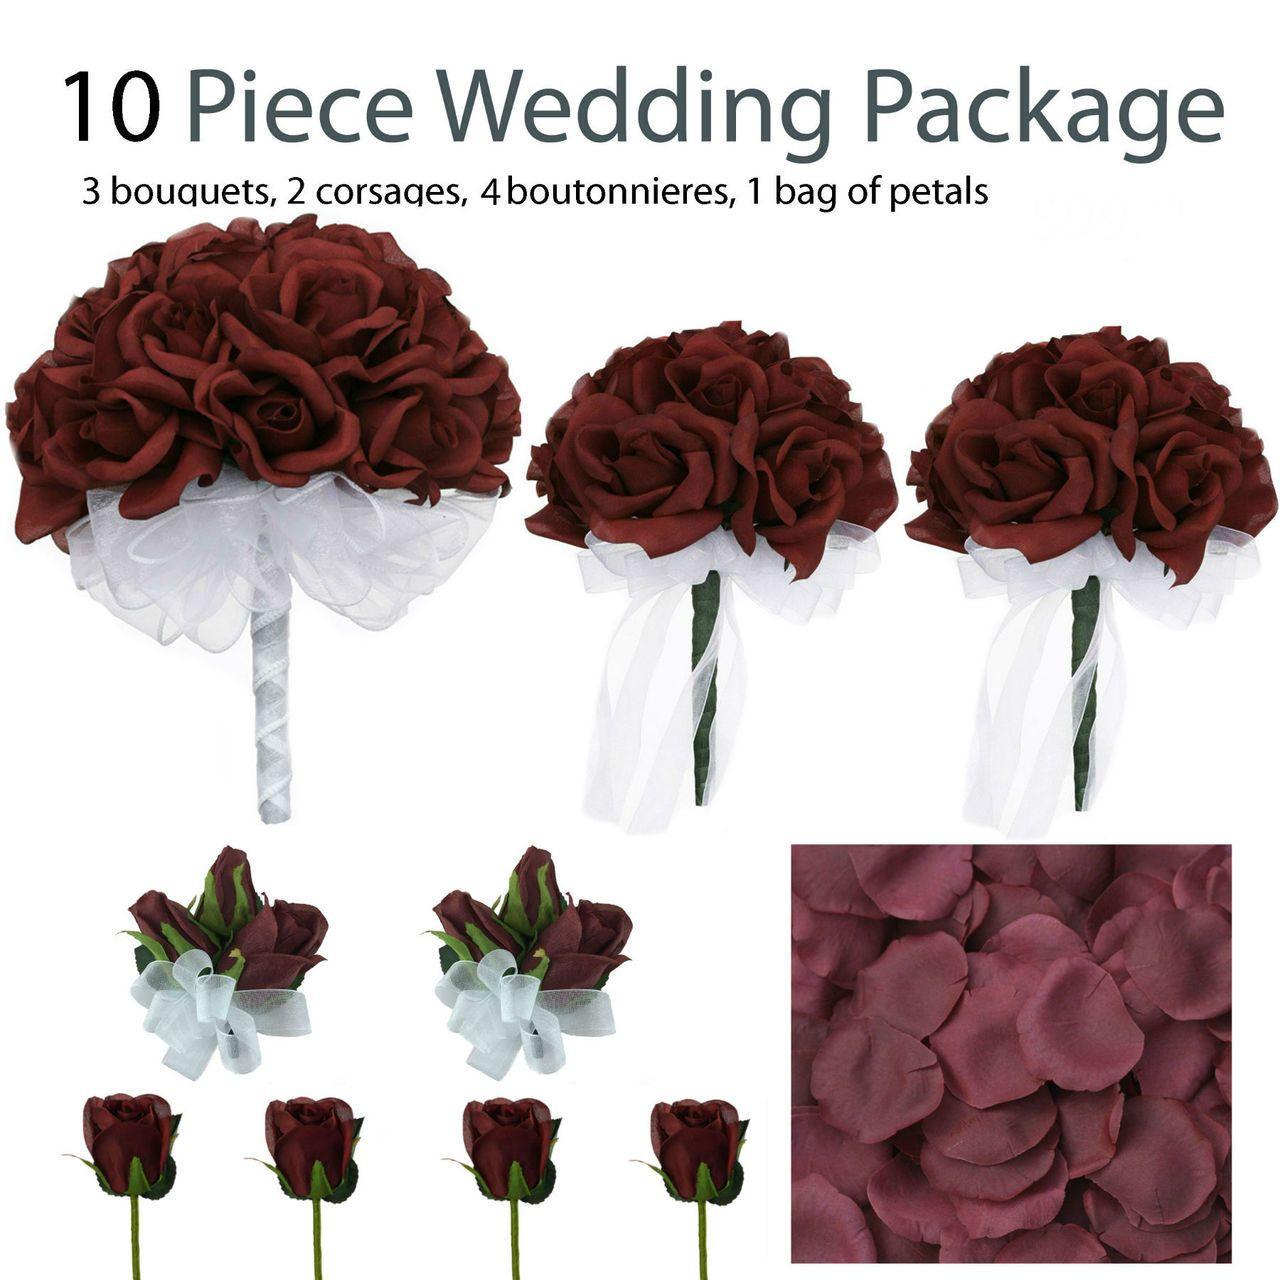 10 Piece Burgundy Silk Wedding Flower Package Burgundy Rose Silk